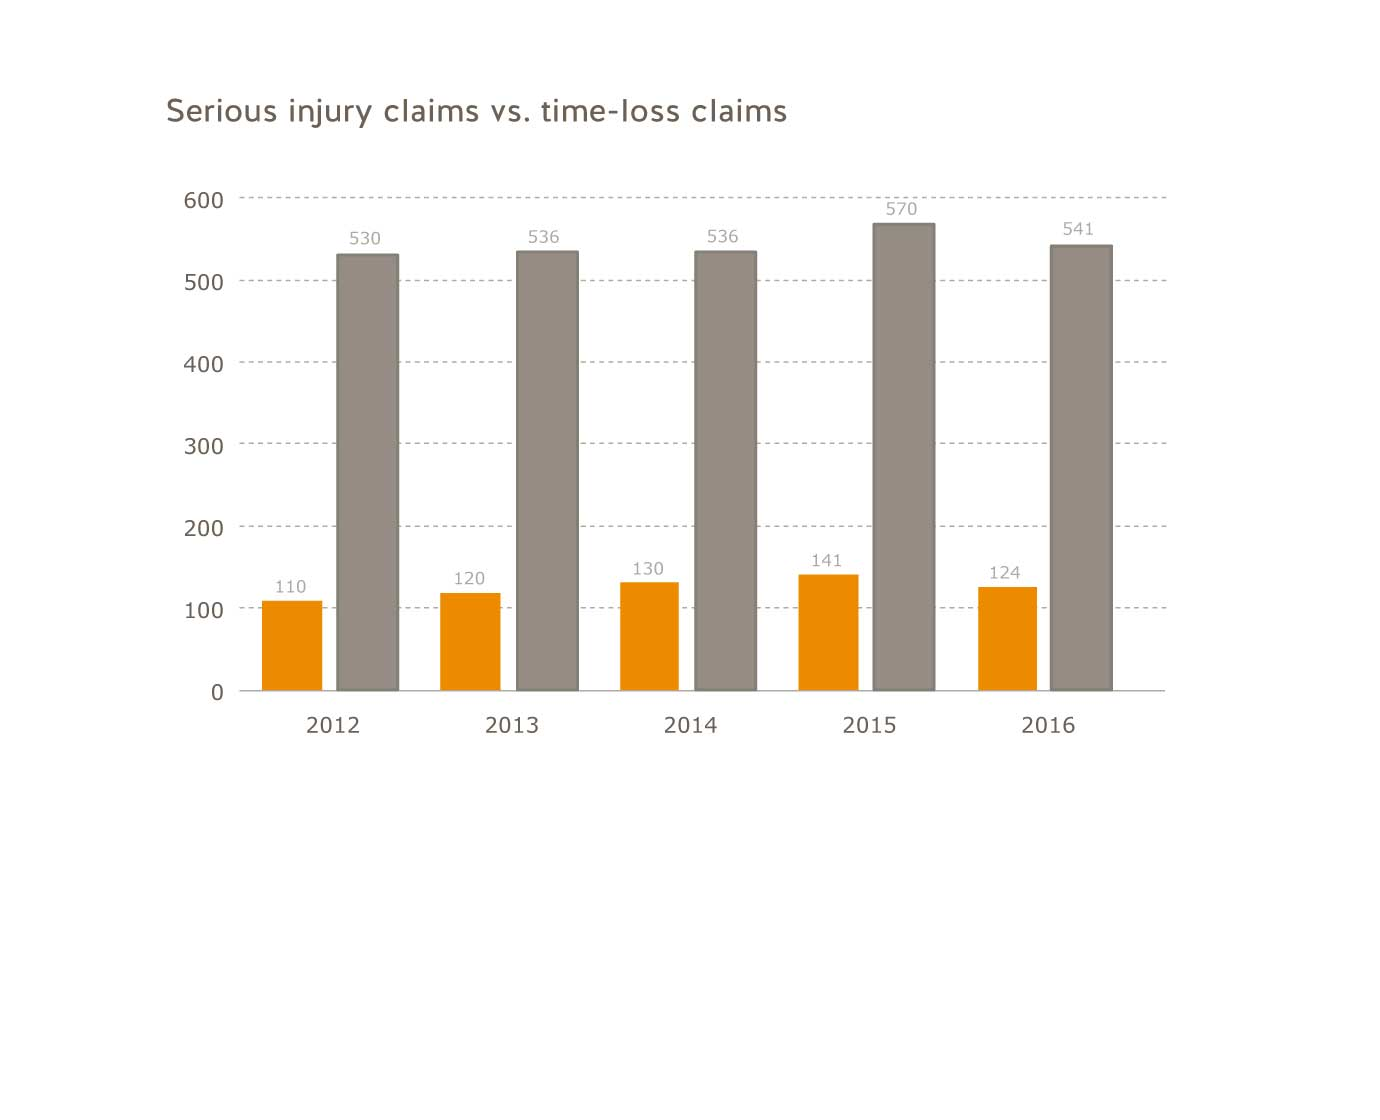 Serious injury claims vs.  time-loss claims for the agriculture industry for 2012 to 2016. Agriculture: 2012=110; 2013-120; 2014-130; 2015=141; 2016=124. All B.C.: 2012=530; 2013=536; 2014=536; 2015=570; 2016=541